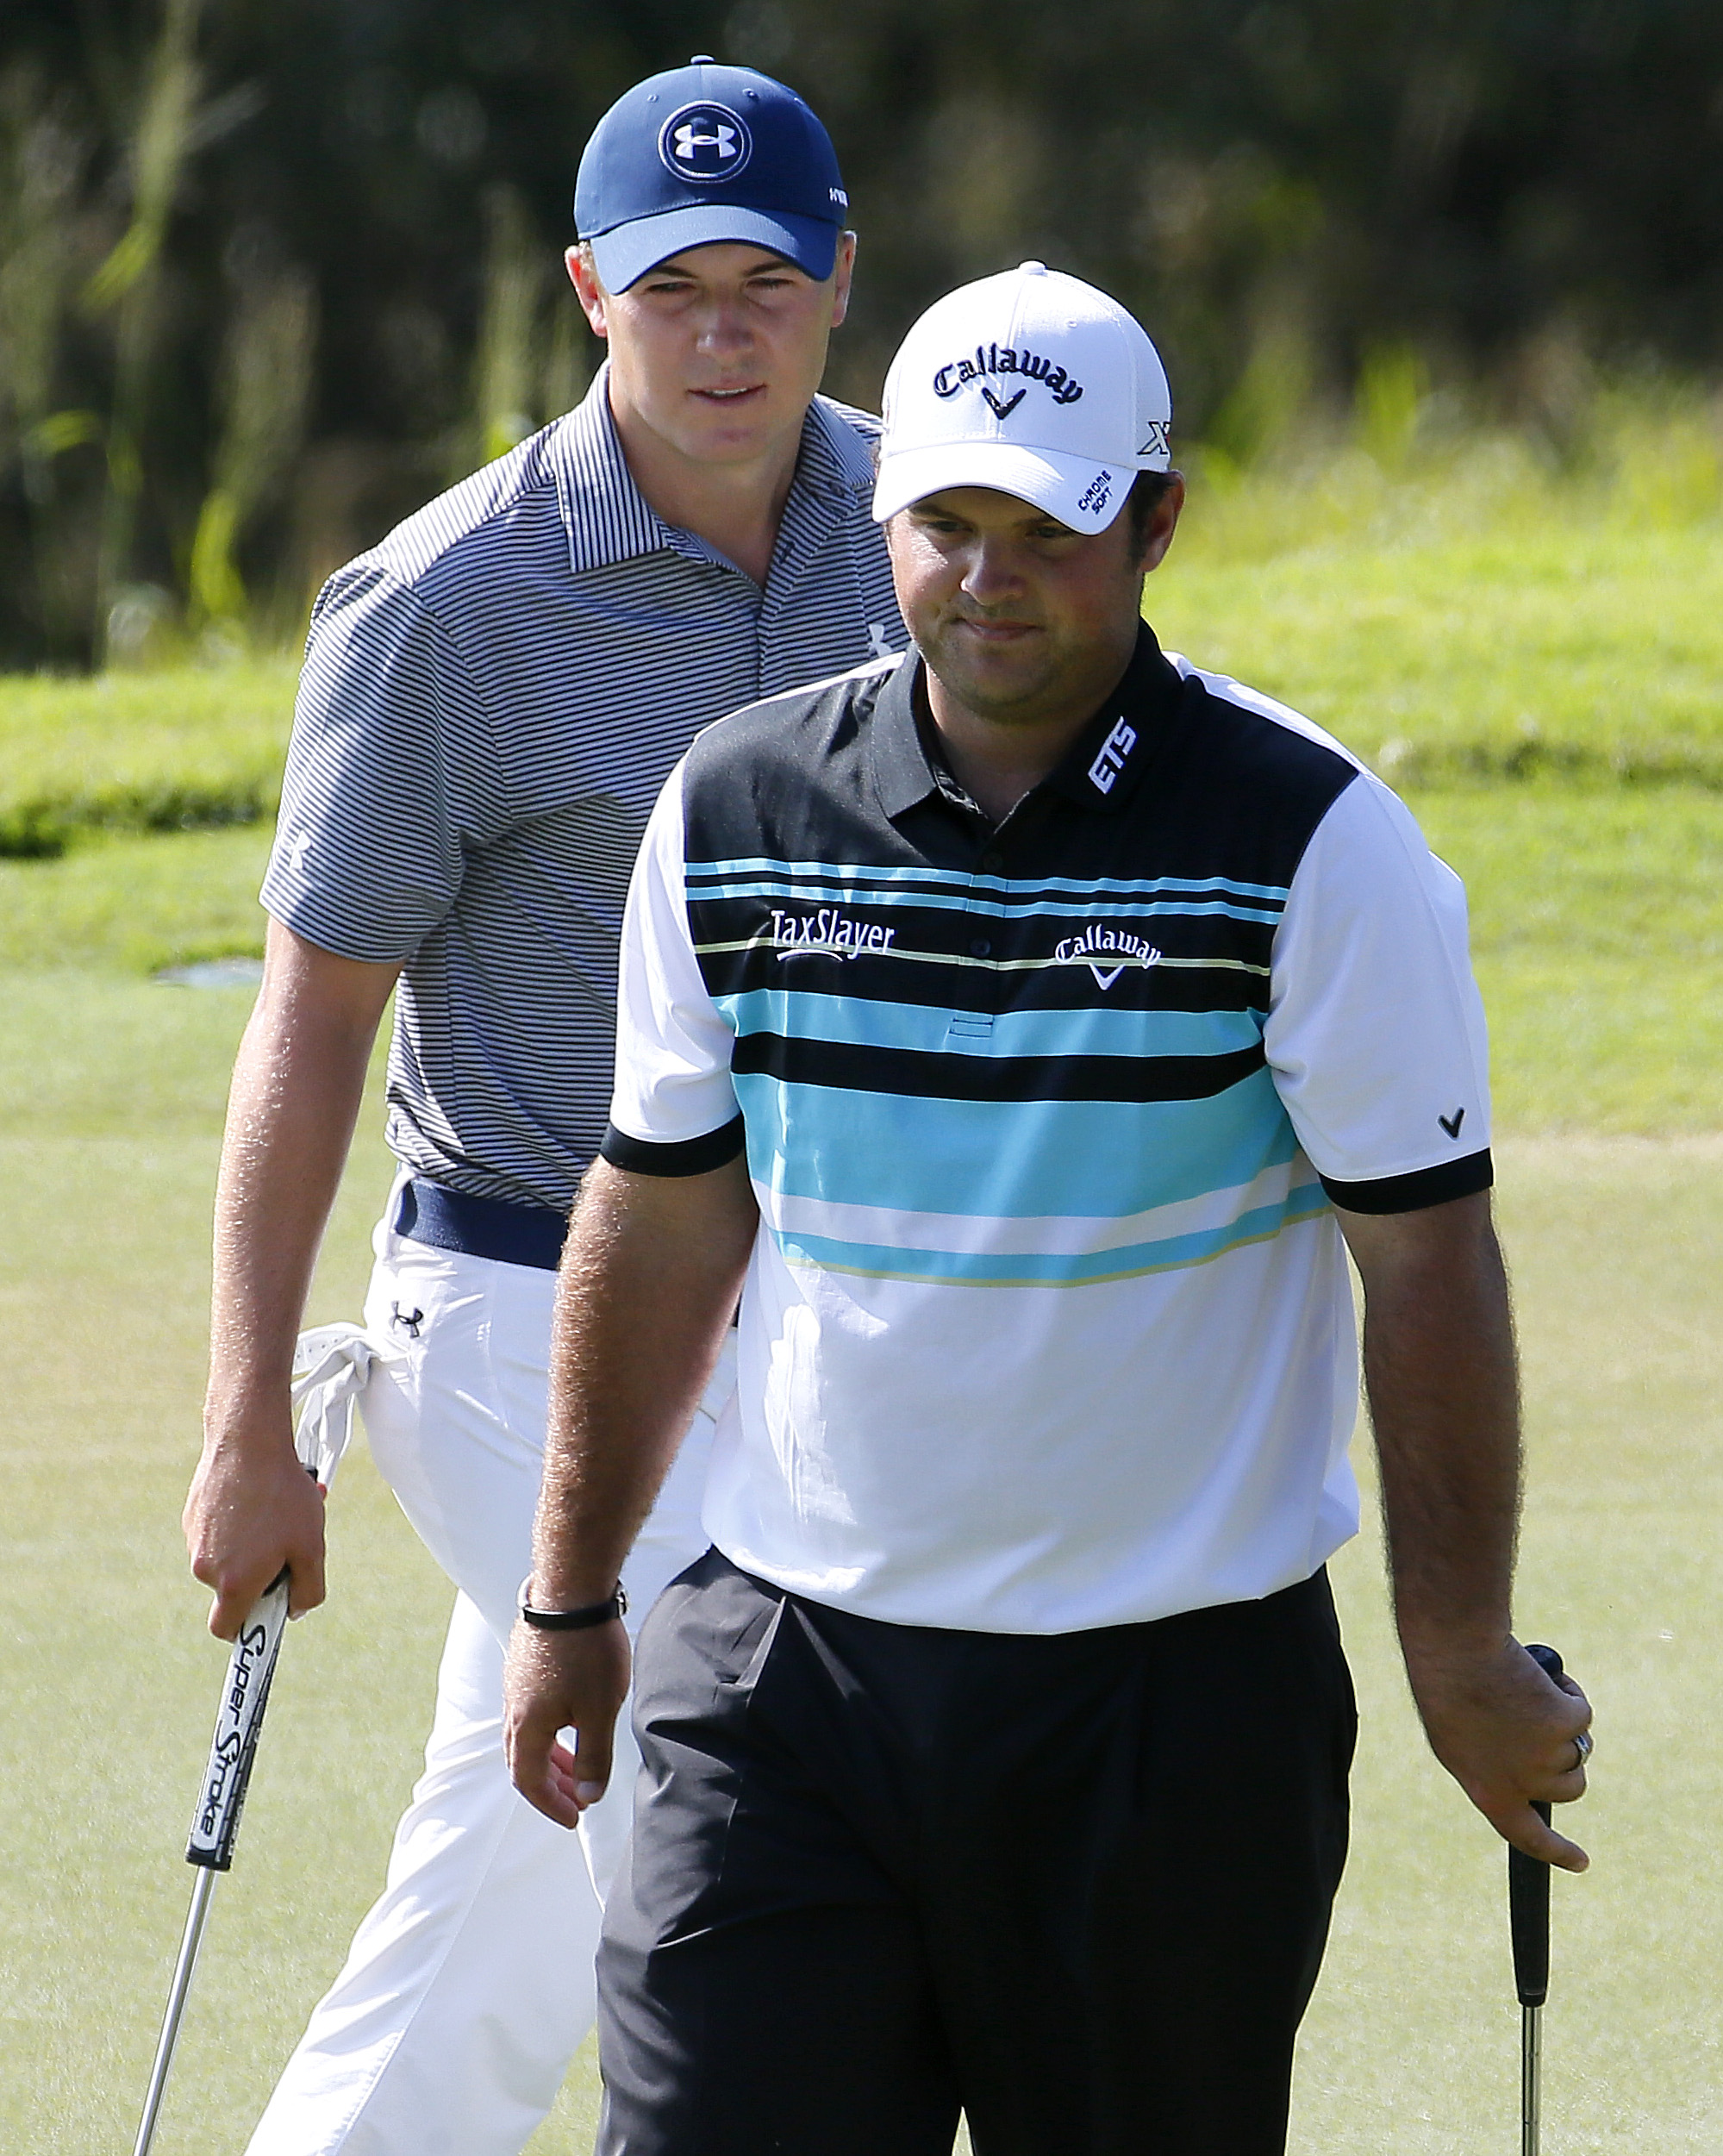 Jordan Spieth, rear, and Patrick Reed walks to their golf balls on the eighth green during the second round of the Tournament of Champions on Friday, Jan. 8, 2016, in Kapalua Plantation Course on Kapalua, Hawaii. (AP Photo/Matt York)